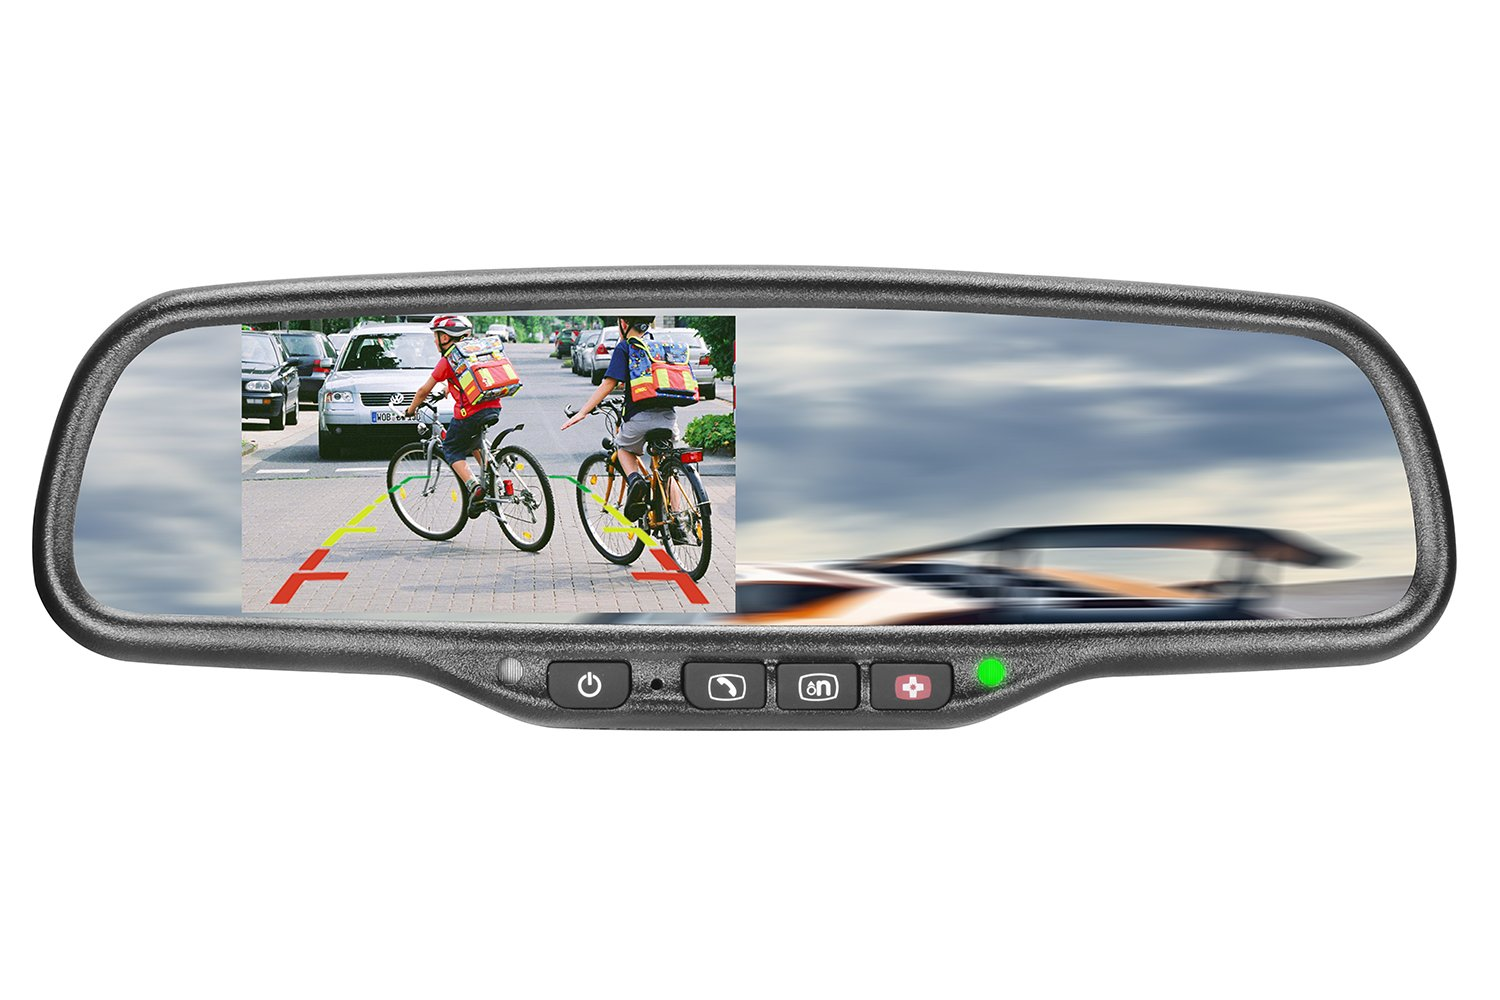 iMirror GHK-043LA-ON Car Rearview Mirror with 4.3'' LCD Display Mirror Monitor Specially Designed for GM On-star